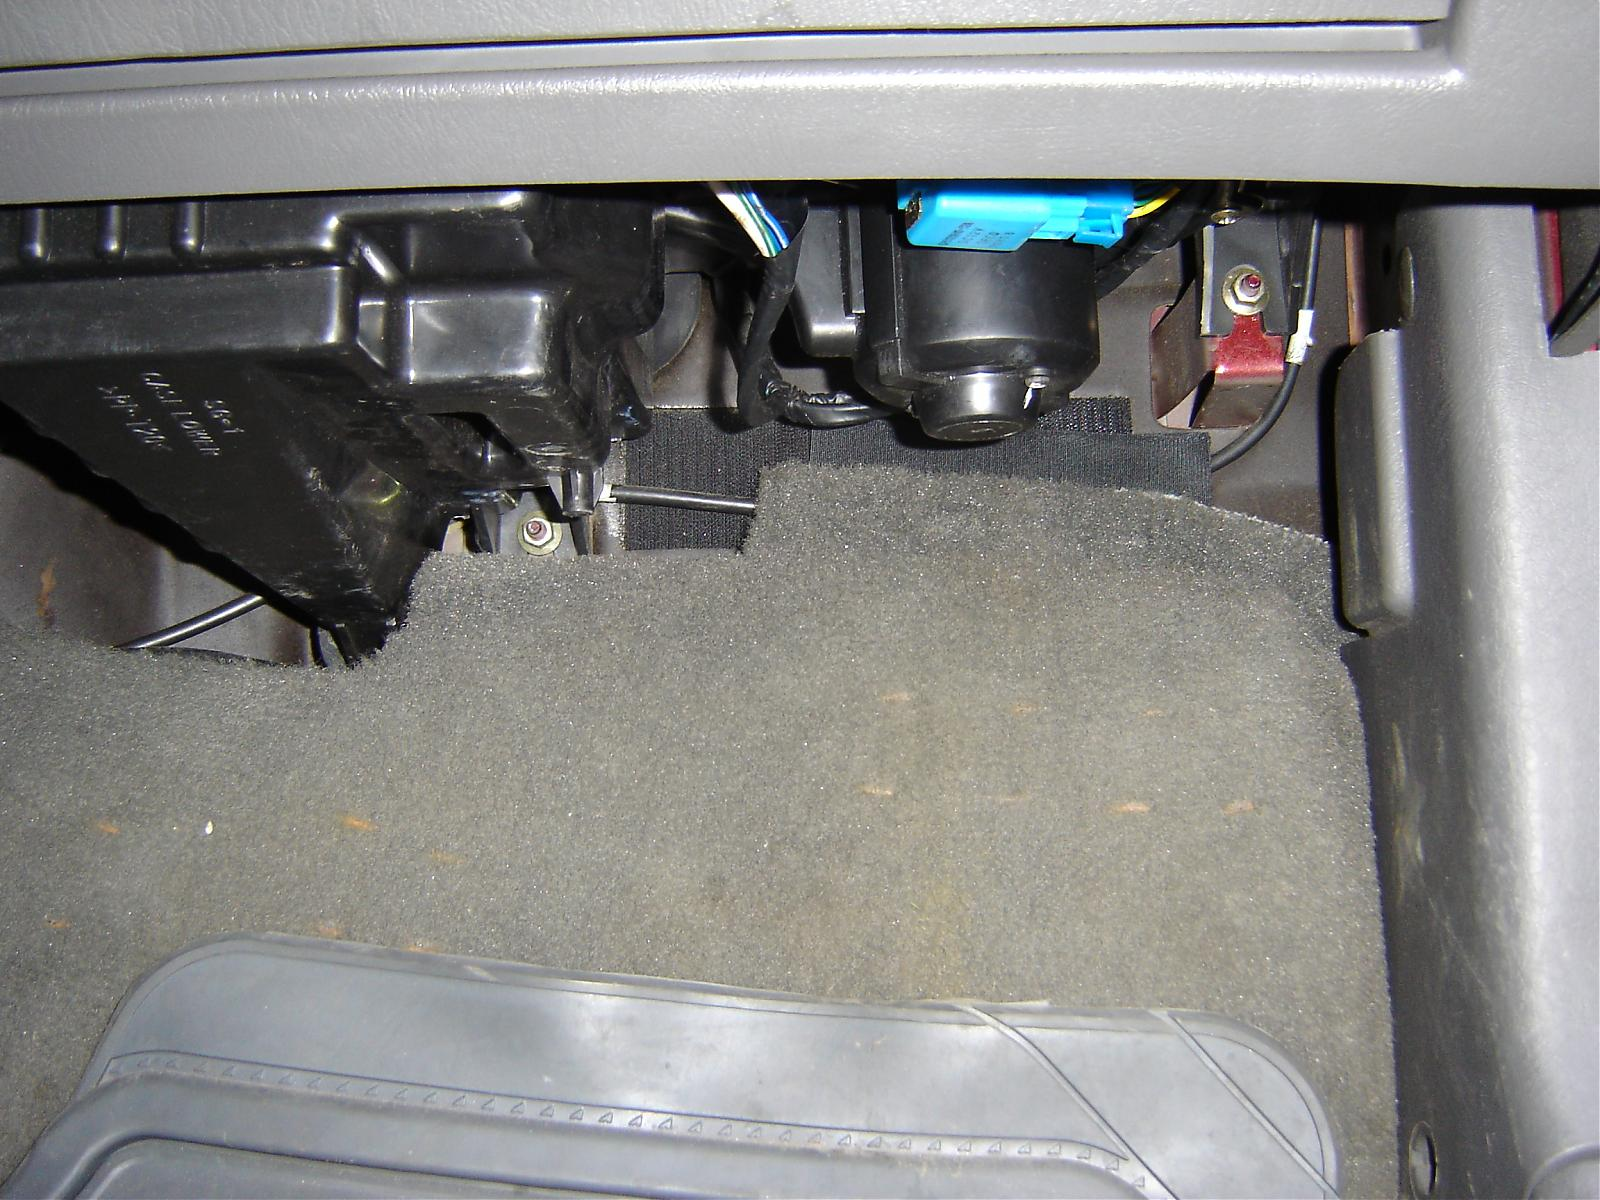 stingrayforums   forum stingraycorvettenews 8933wantzoramidengineconfirmationprint in addition Fan Replacement Motors For Motor Repalcement Parts And Diagram moreover RepairGuideContent moreover Trailer wiring Diagram as well Wiring a Cooler Motor. on electric fan motors replacement for 2001